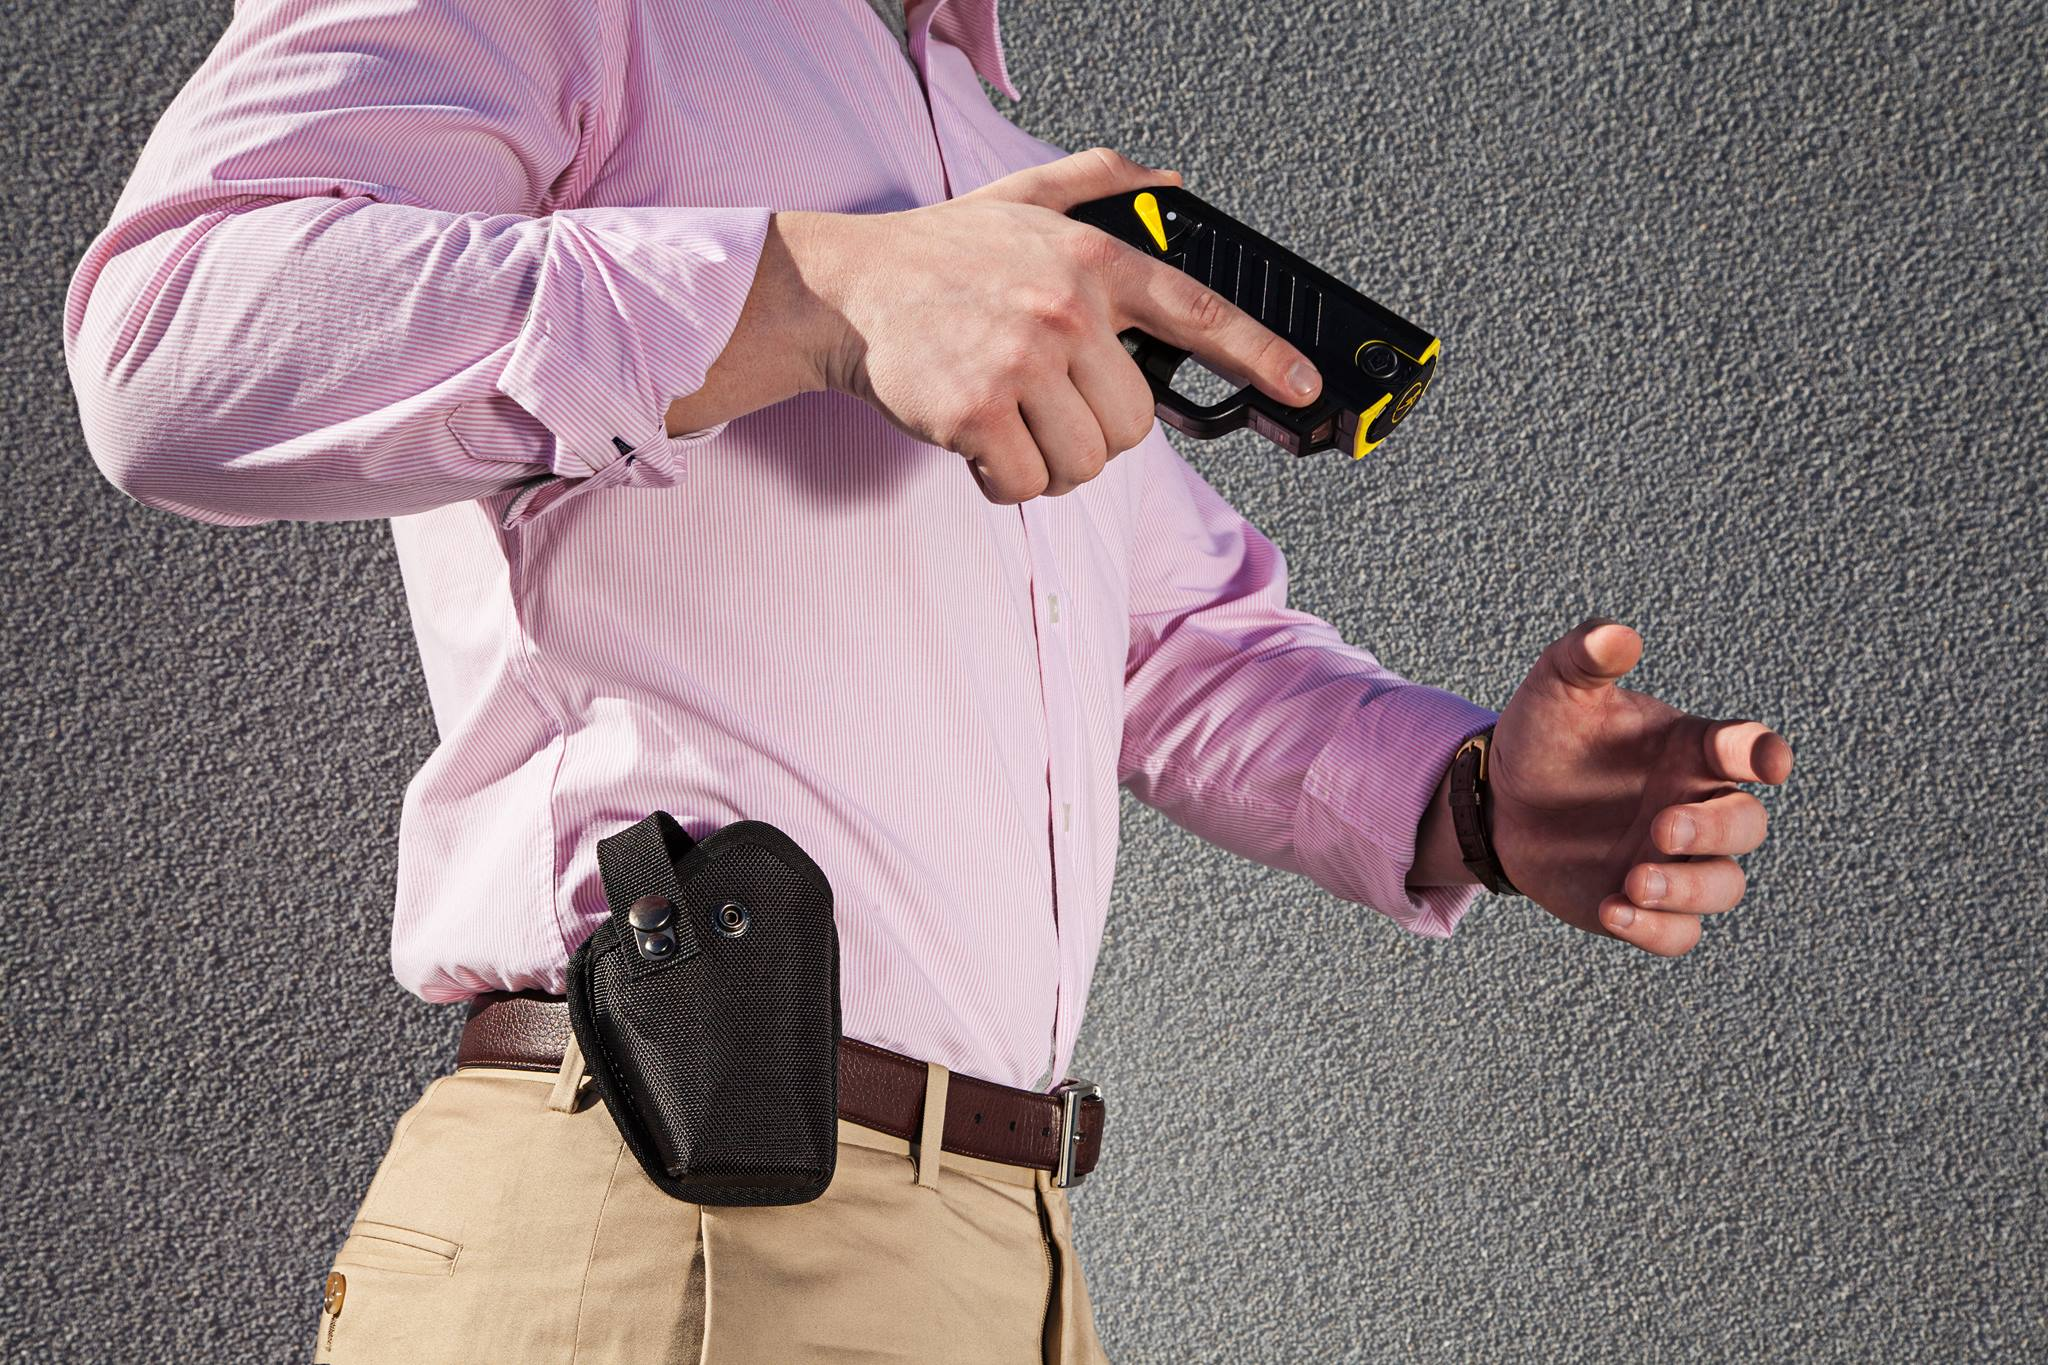 spark testing your TASER Device